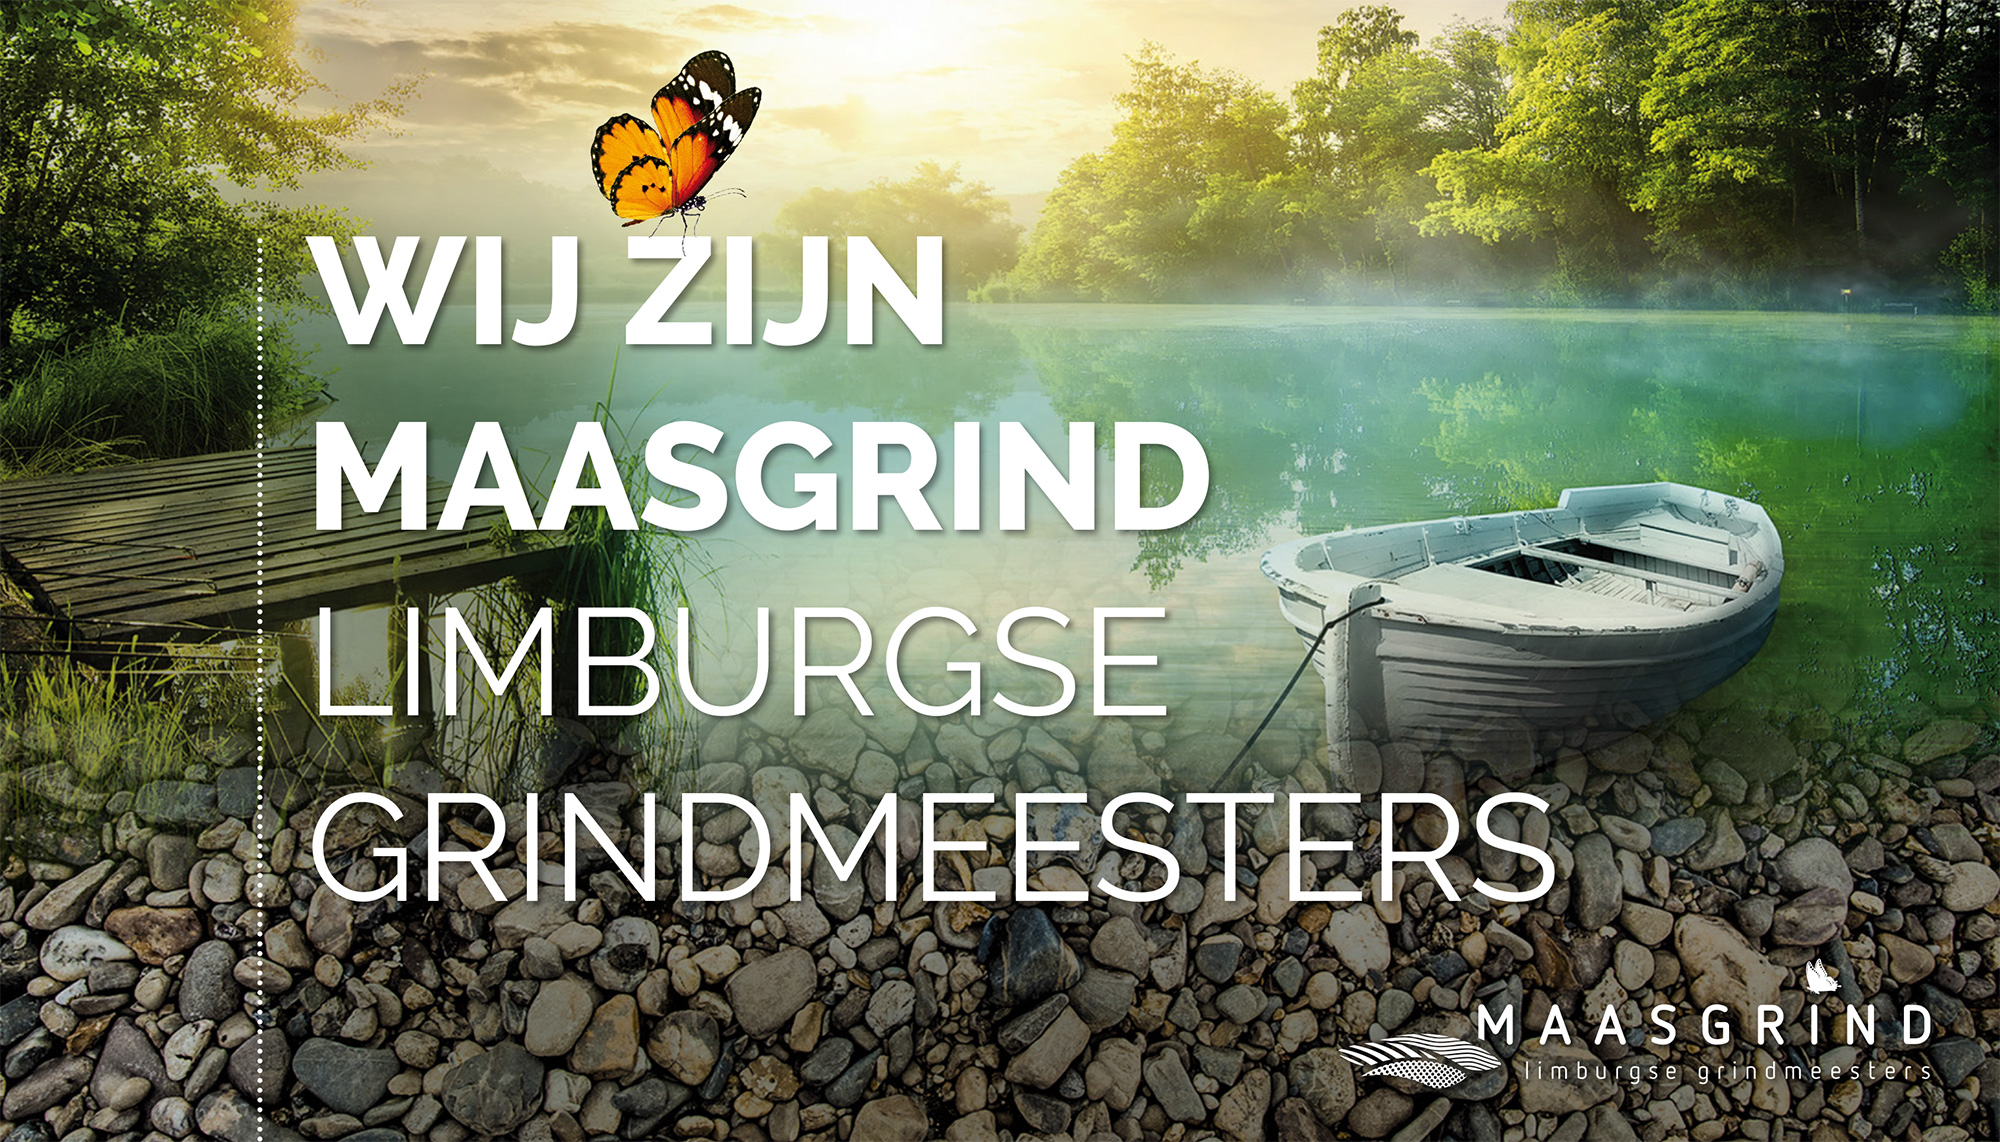 Maasgrind, Limburgse Grindmeesters-Spiegel crossmedia communicatie